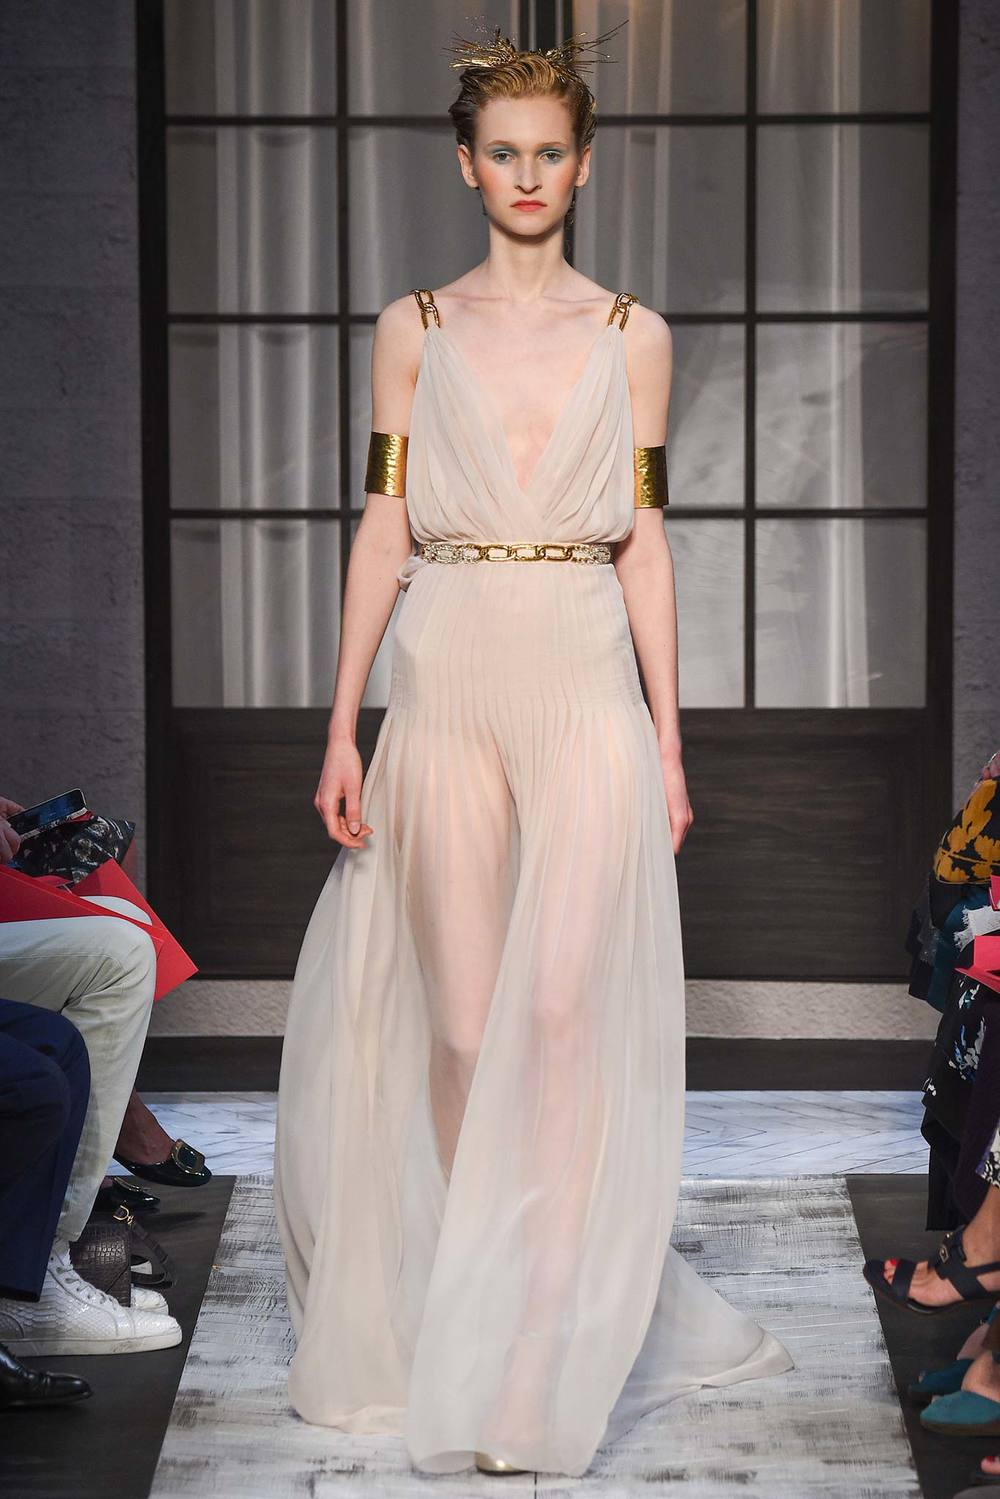 Some Greek Goddess shit right here from  Schiaparelli . Double gold arm bands FTW.